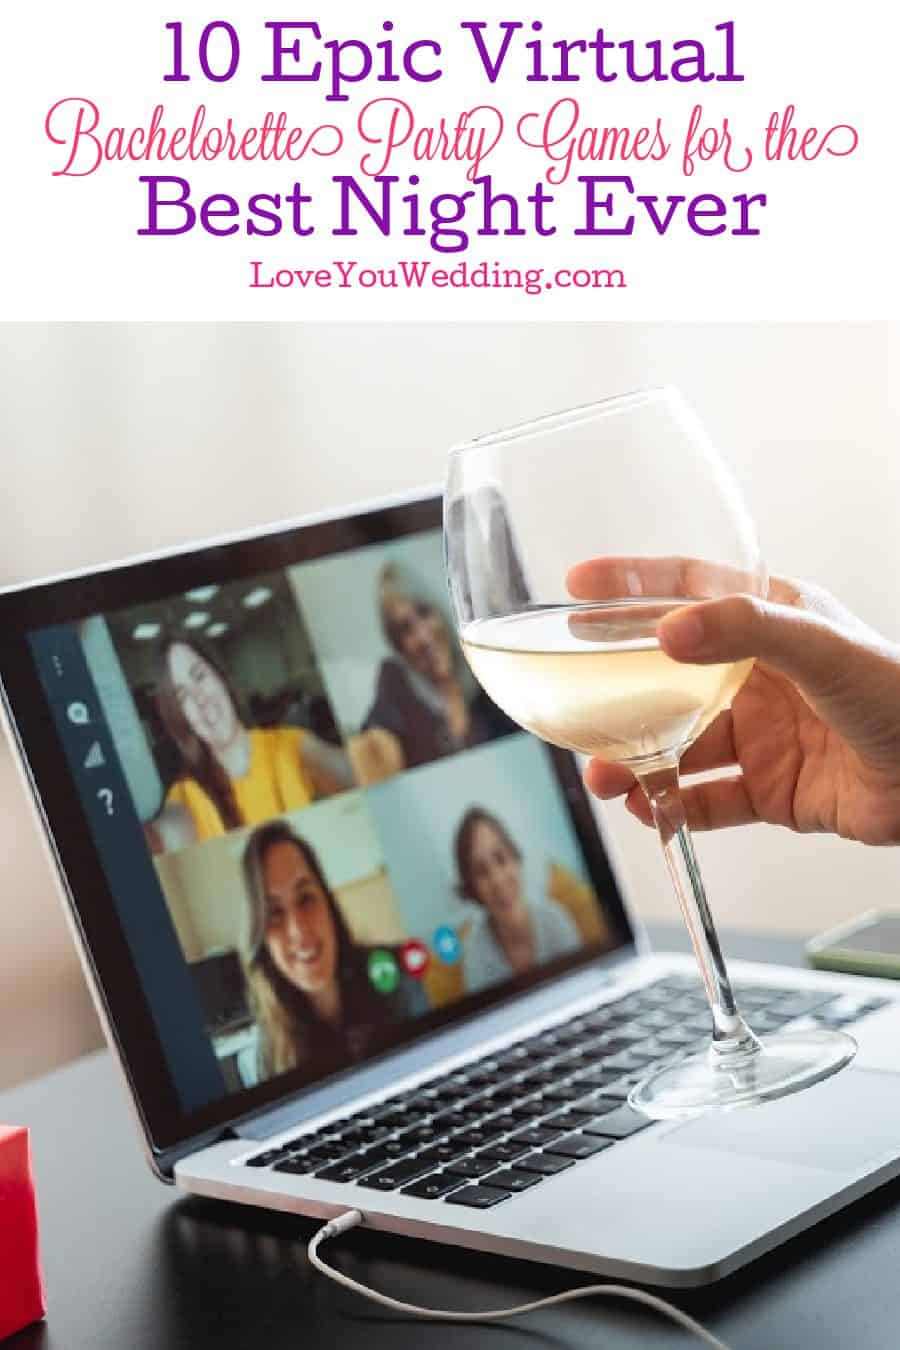 Need some ideas for virtual bachelorette party games? Check out our guide to everything you need to keep the fun going during your Zoom party!